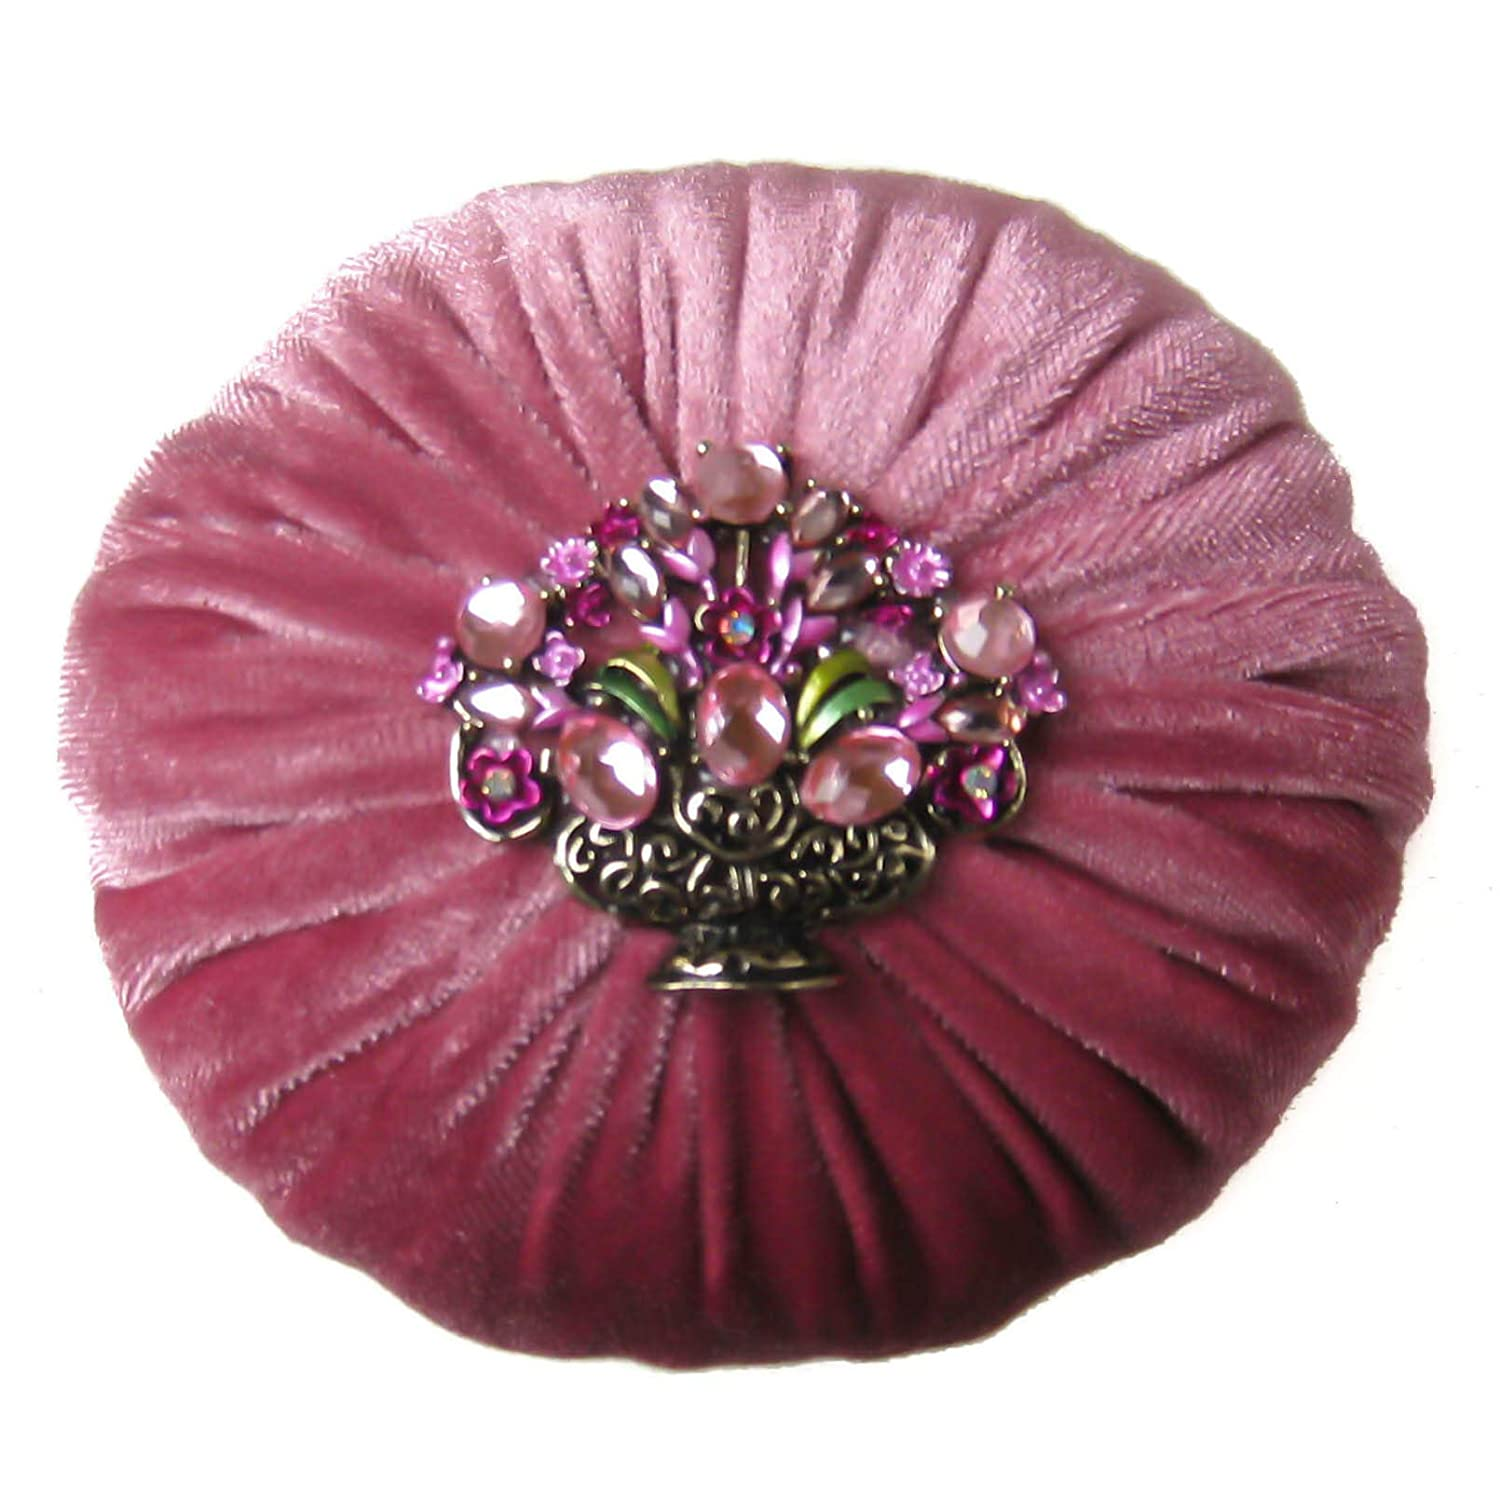 Nakpunar 4 Mauve Pink Velvet Emery Pincushion - Keep Your Needles Clean & Sharp (4, Mauve Pink) 4337009504